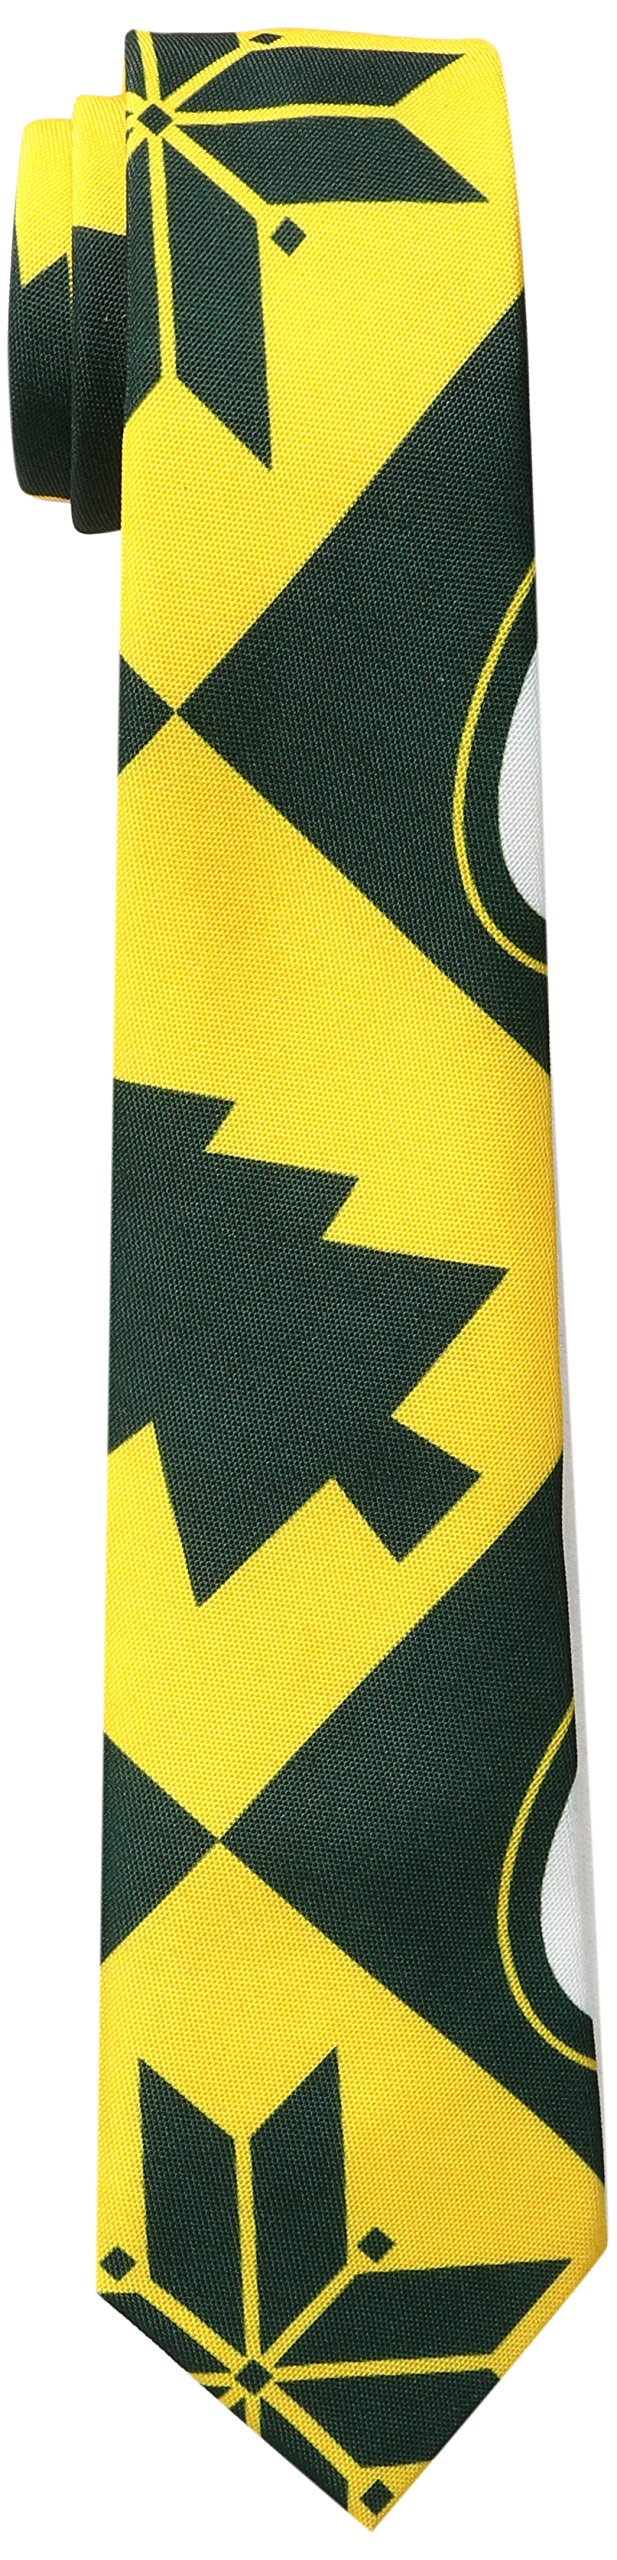 FOCO Green Bay Packers Patches Ugly Printed Tie - Mens